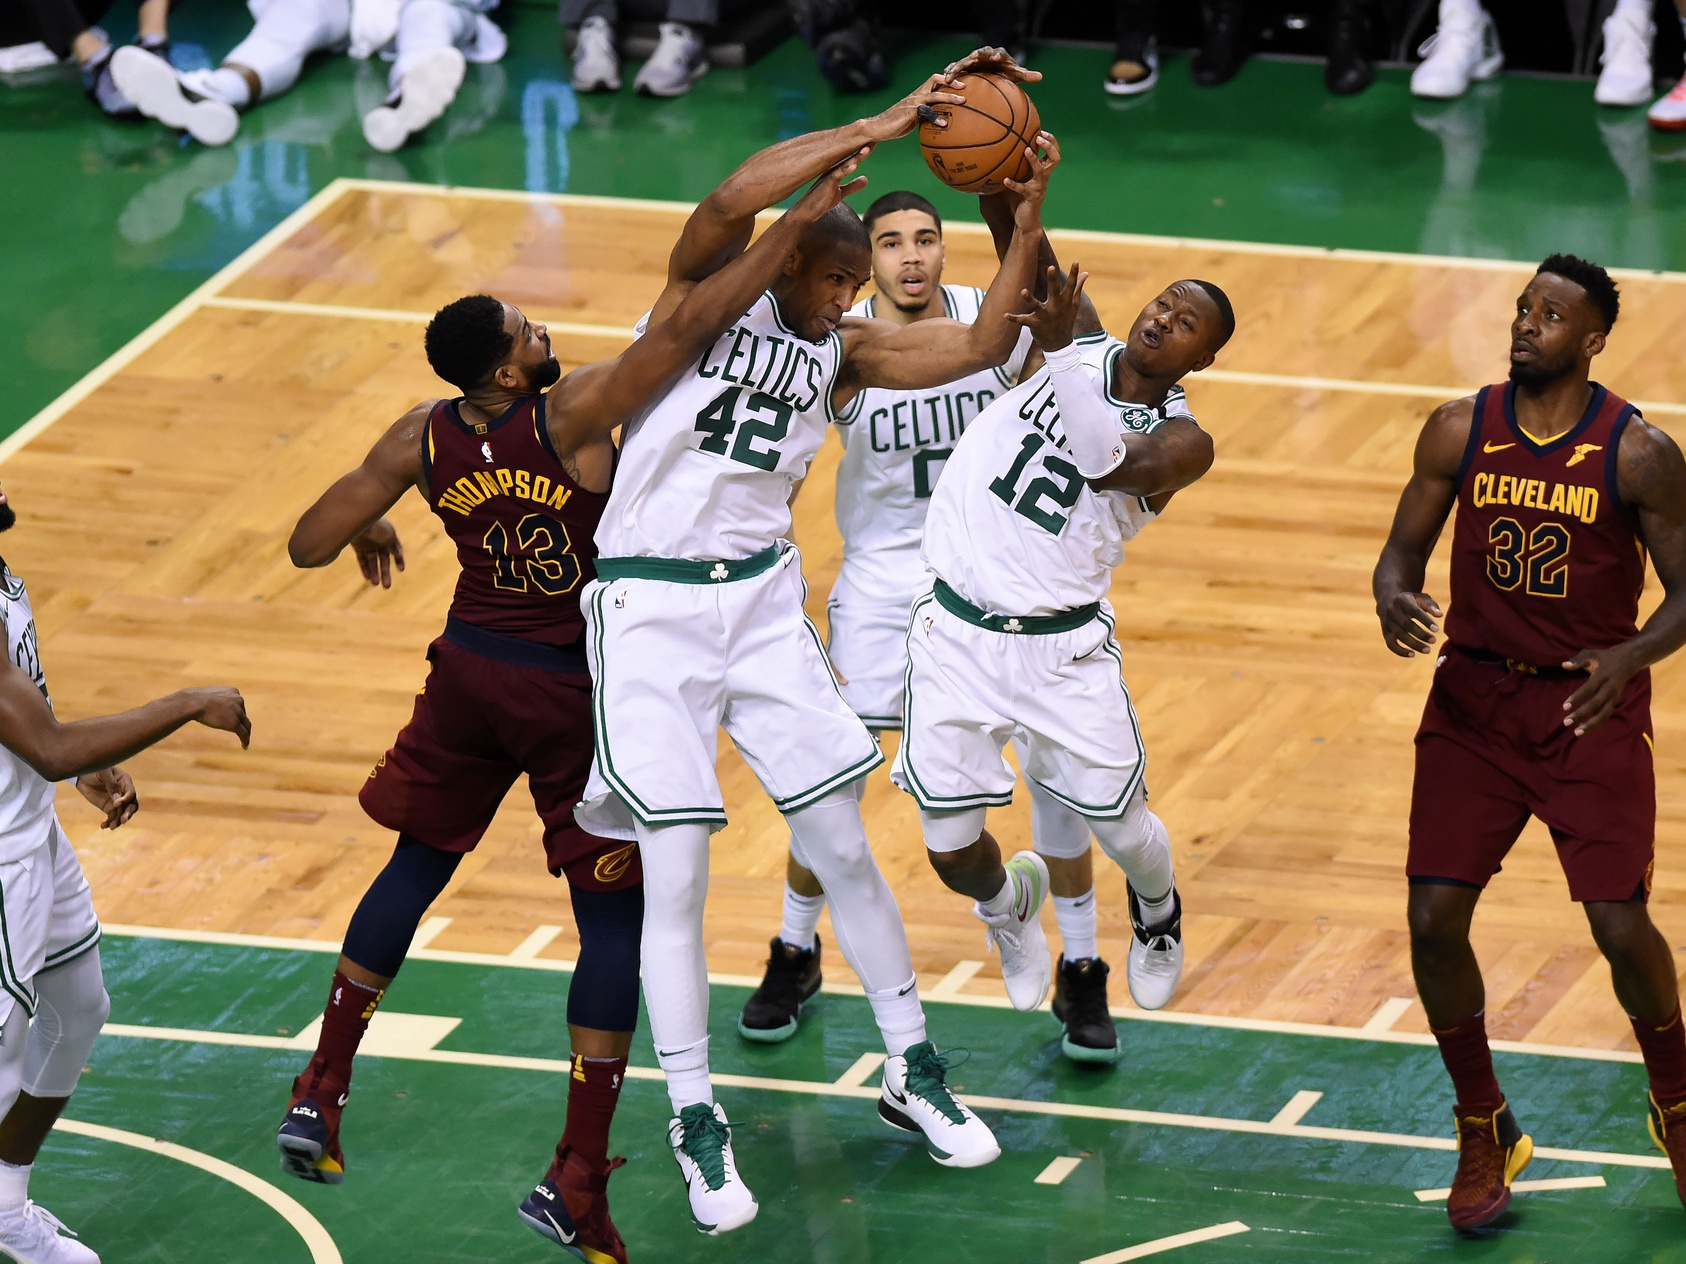 Your Morning Dump... Where the Celtics are on the verge of ending Cleveland's dominance?